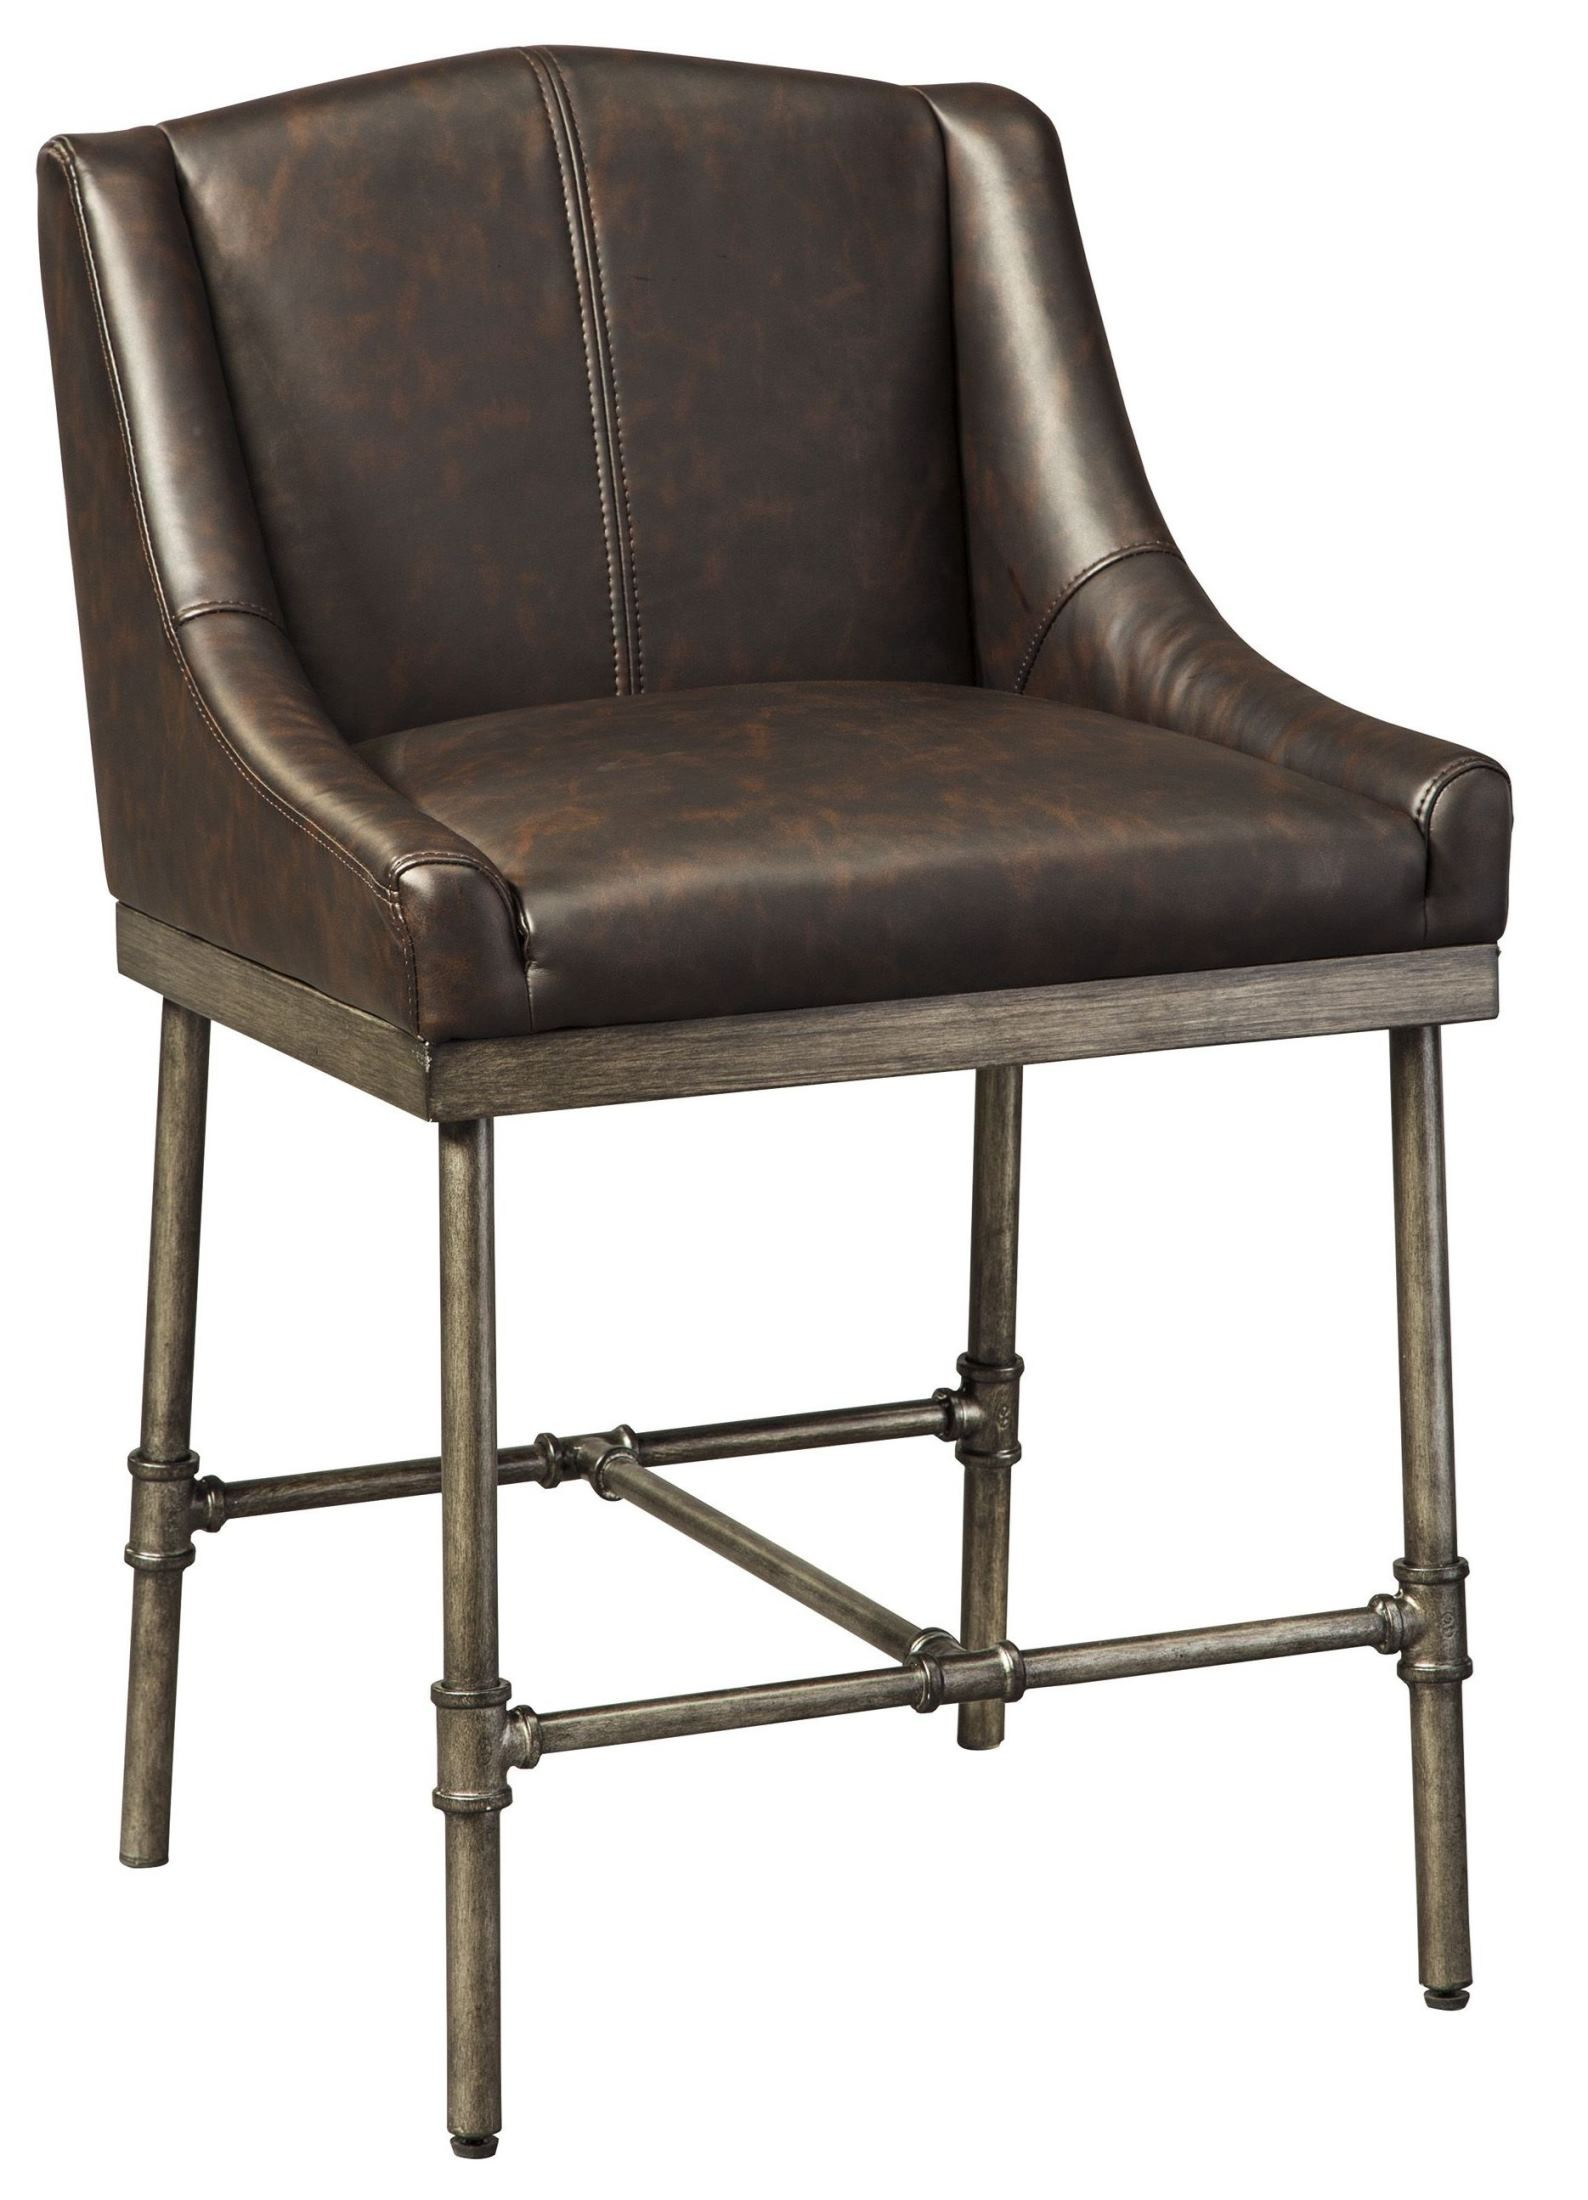 upholstered counter chairs posture care chair cost starmore brown stool set of 2 d633